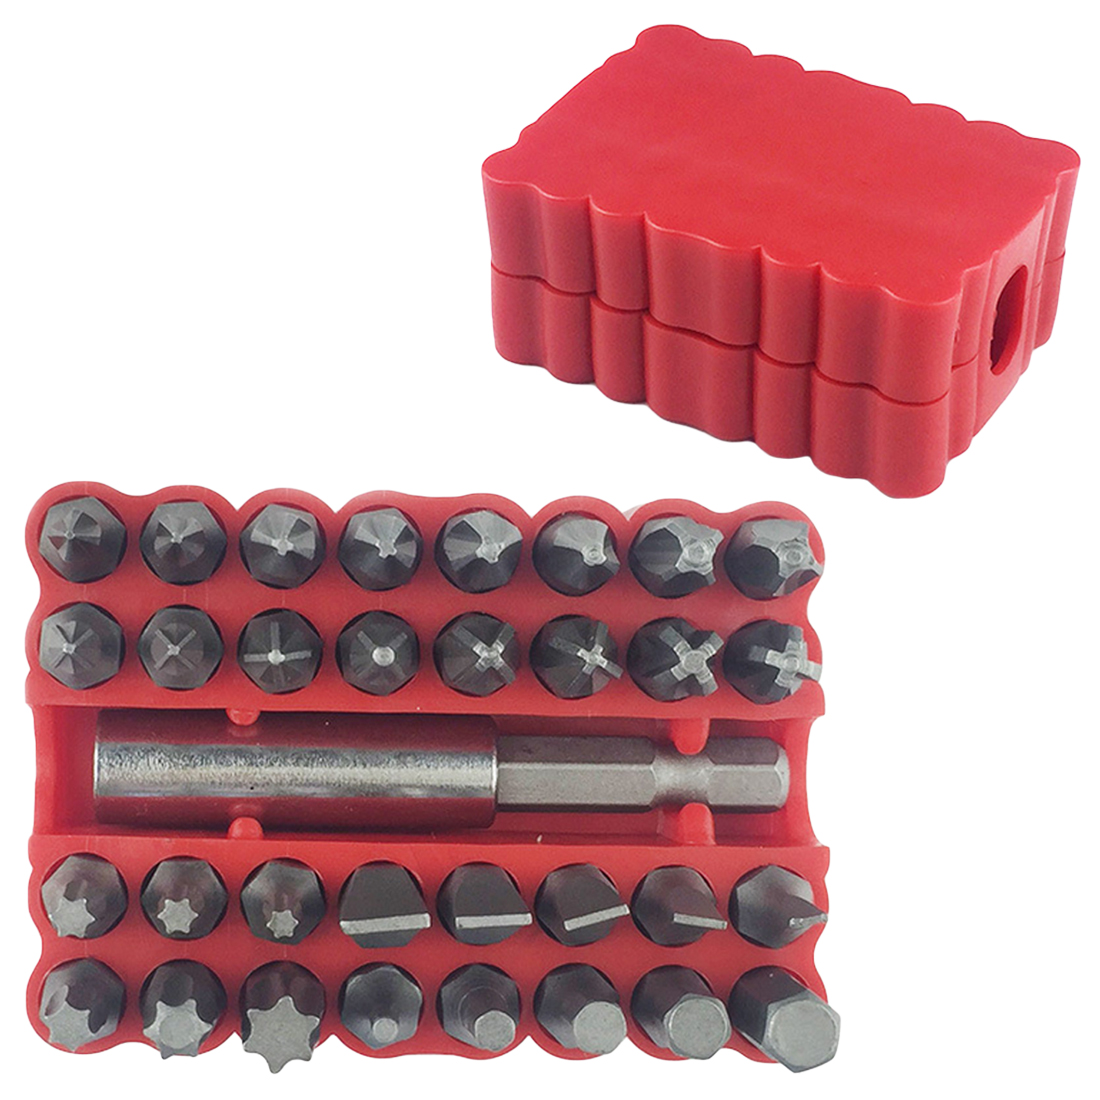 33pcs Security Tamper Proof Bit Set Torx Hex Star Spanner Screwdriver Tip Hand Tool Set Chrome-vanadium Steel